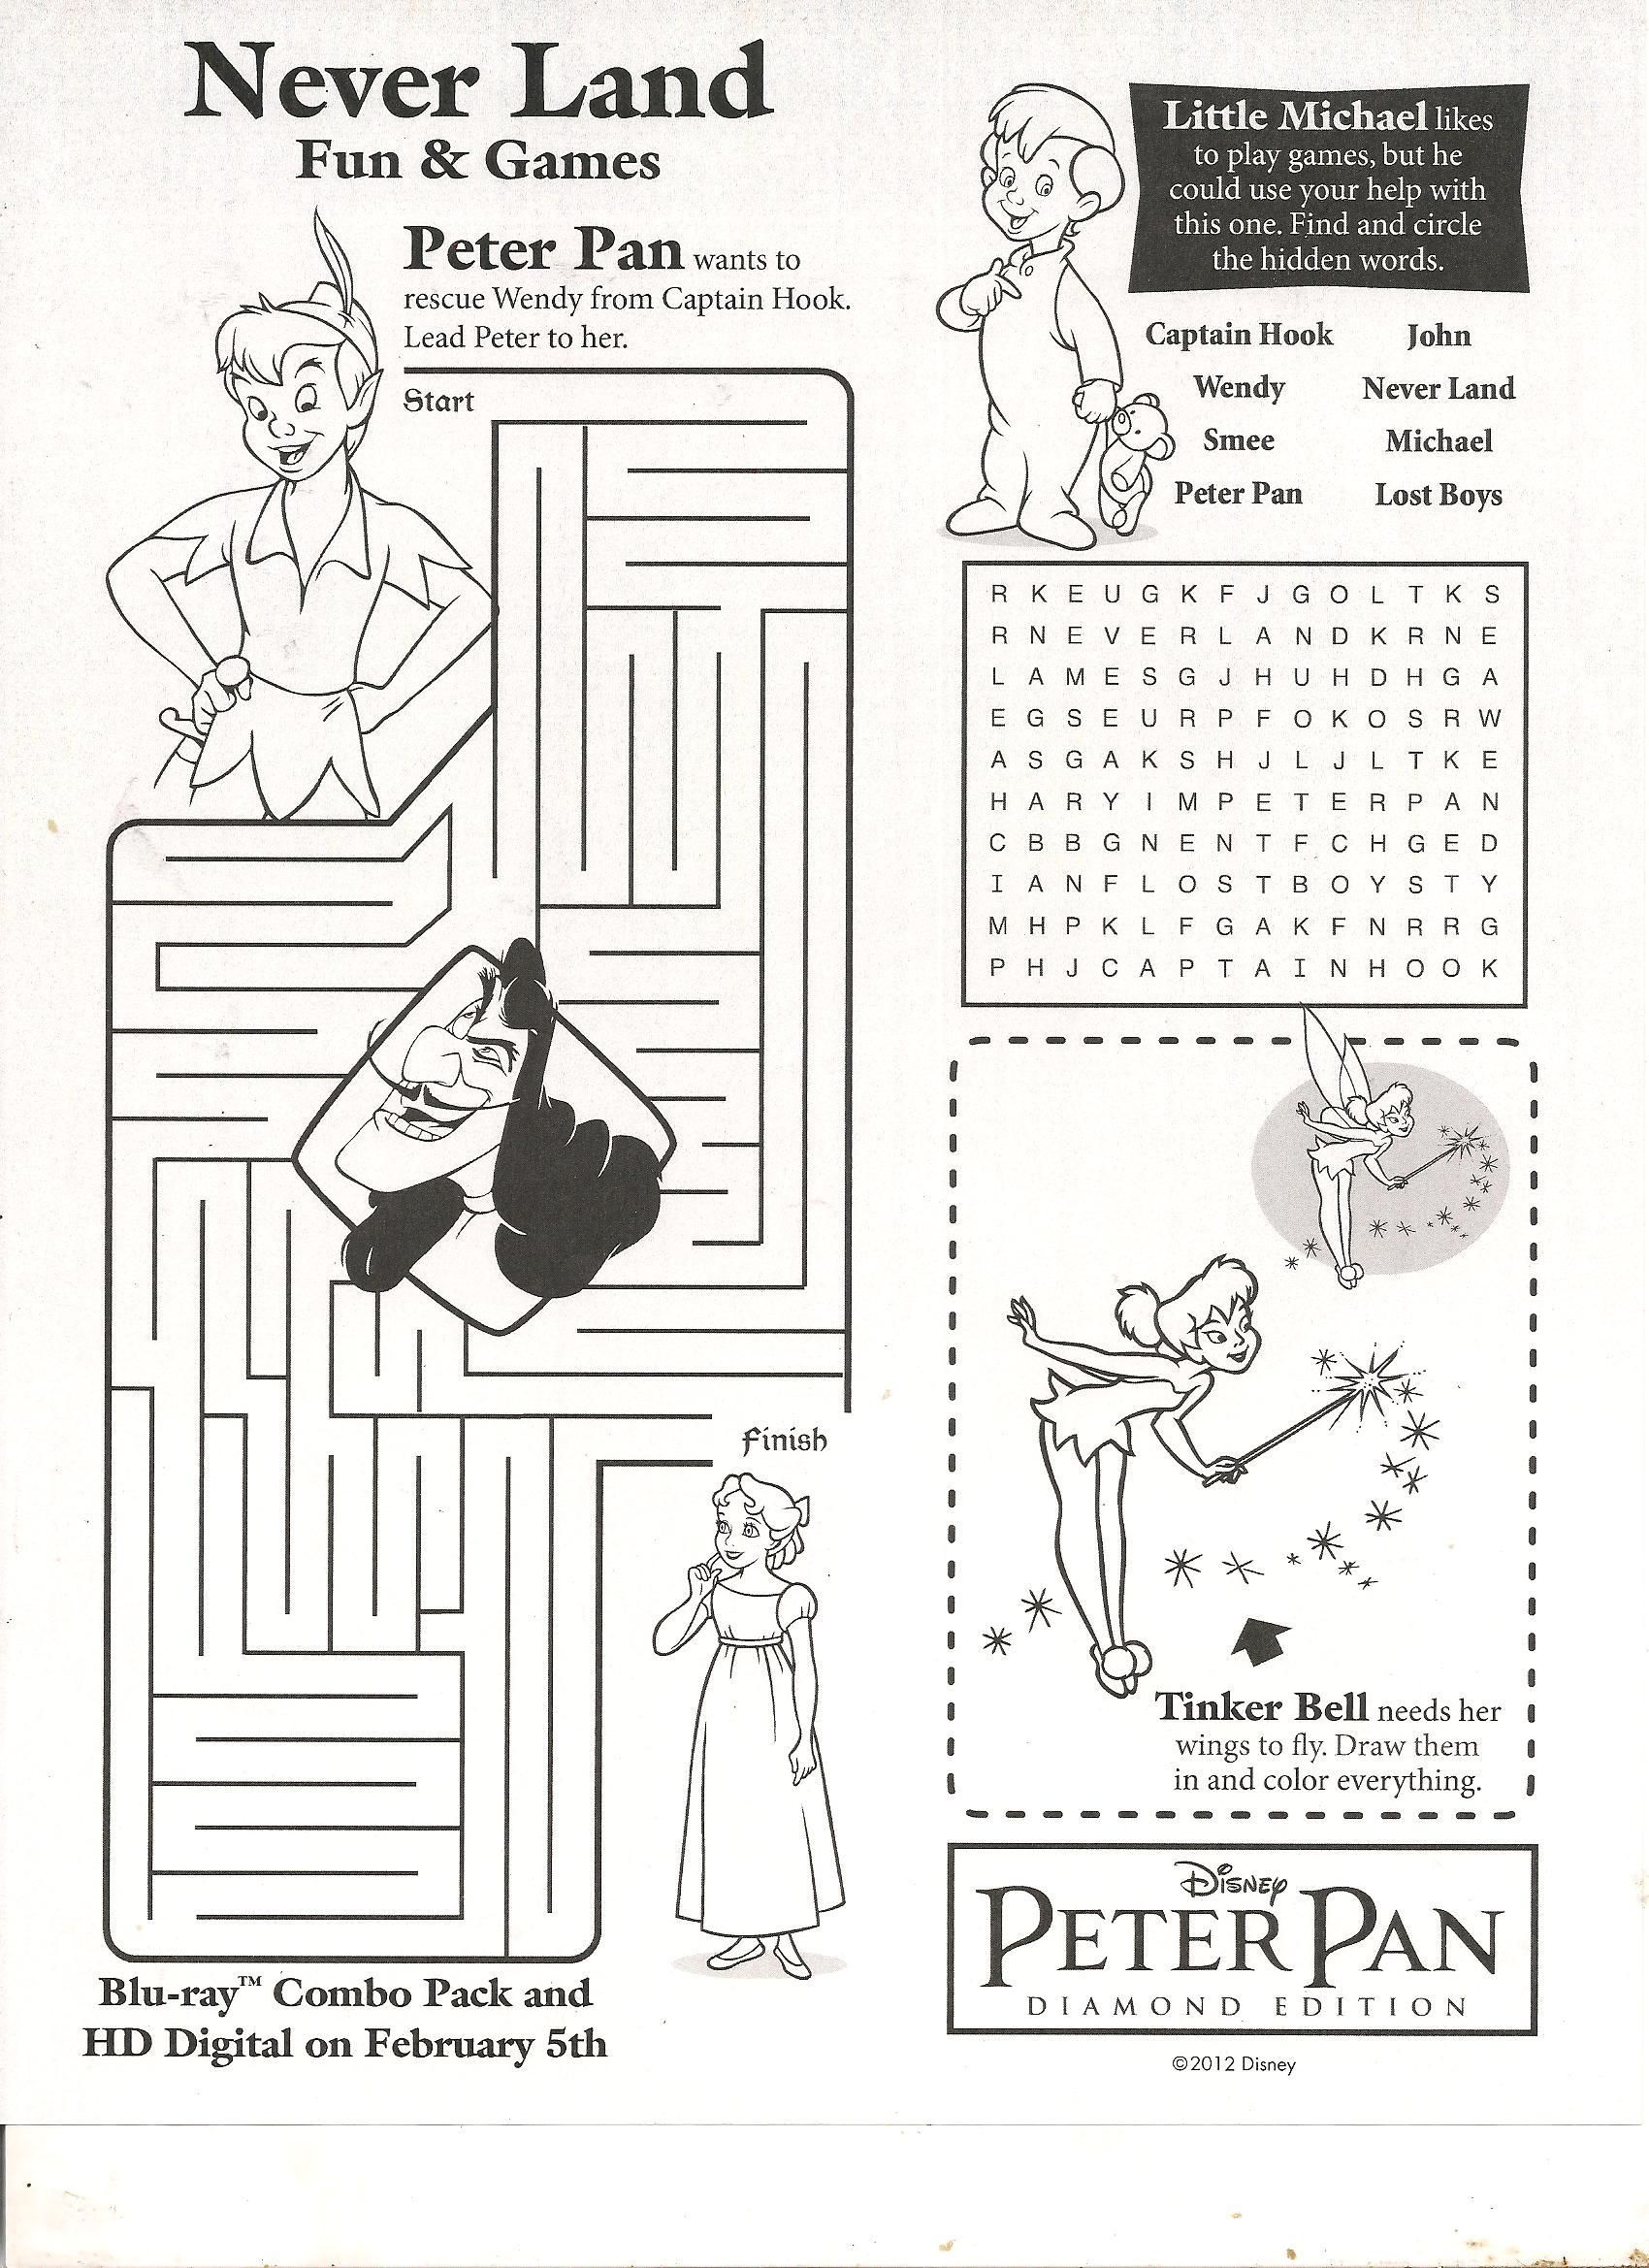 peter pans captain hook free printable activity sheet - Kids Activity Printables